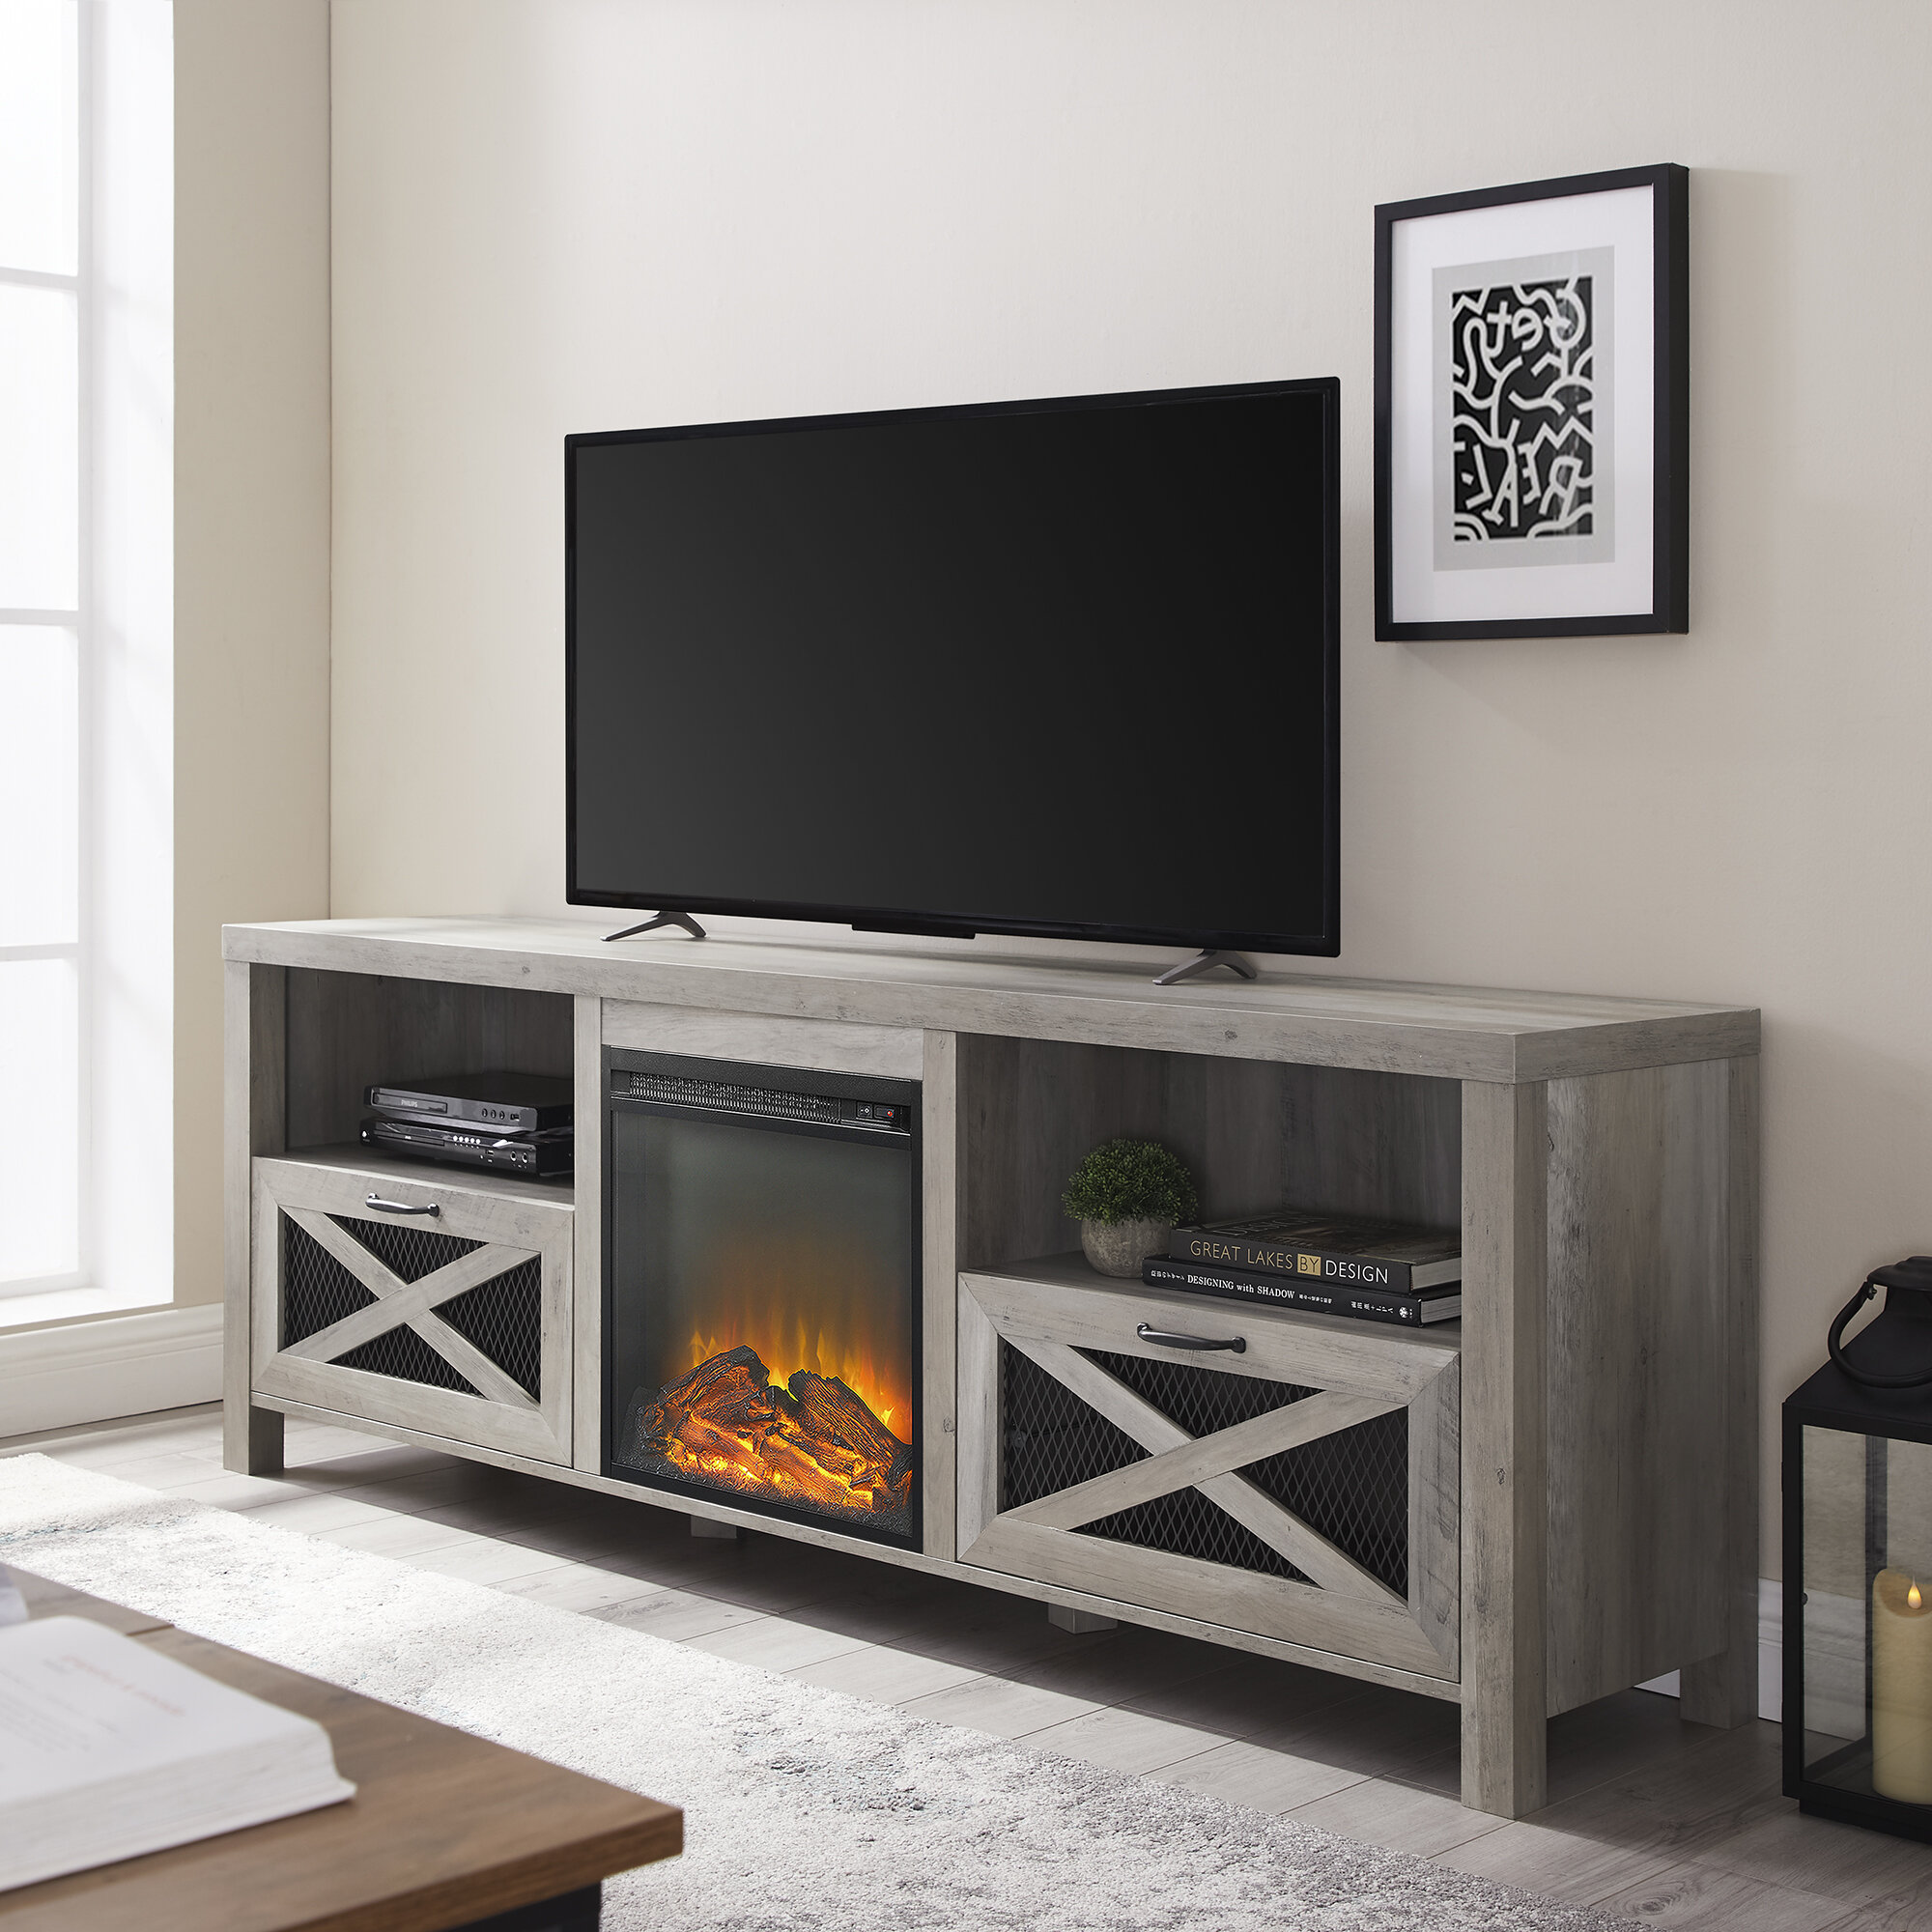 70 rustic farmhouse fireplace tv stand grey wash